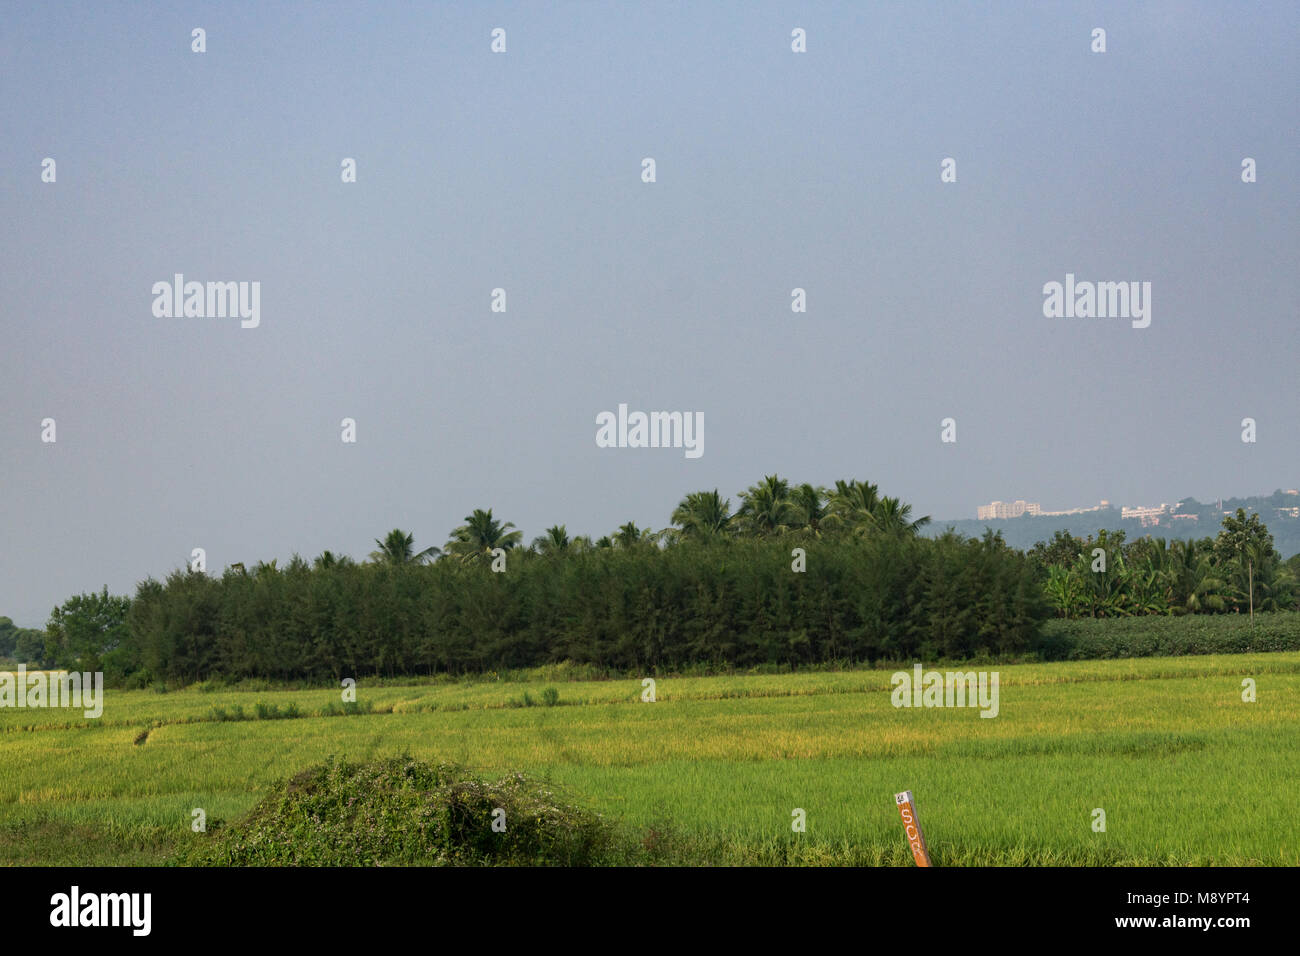 Paddy farm looking awesome with Casuarina trees. - Stock Image